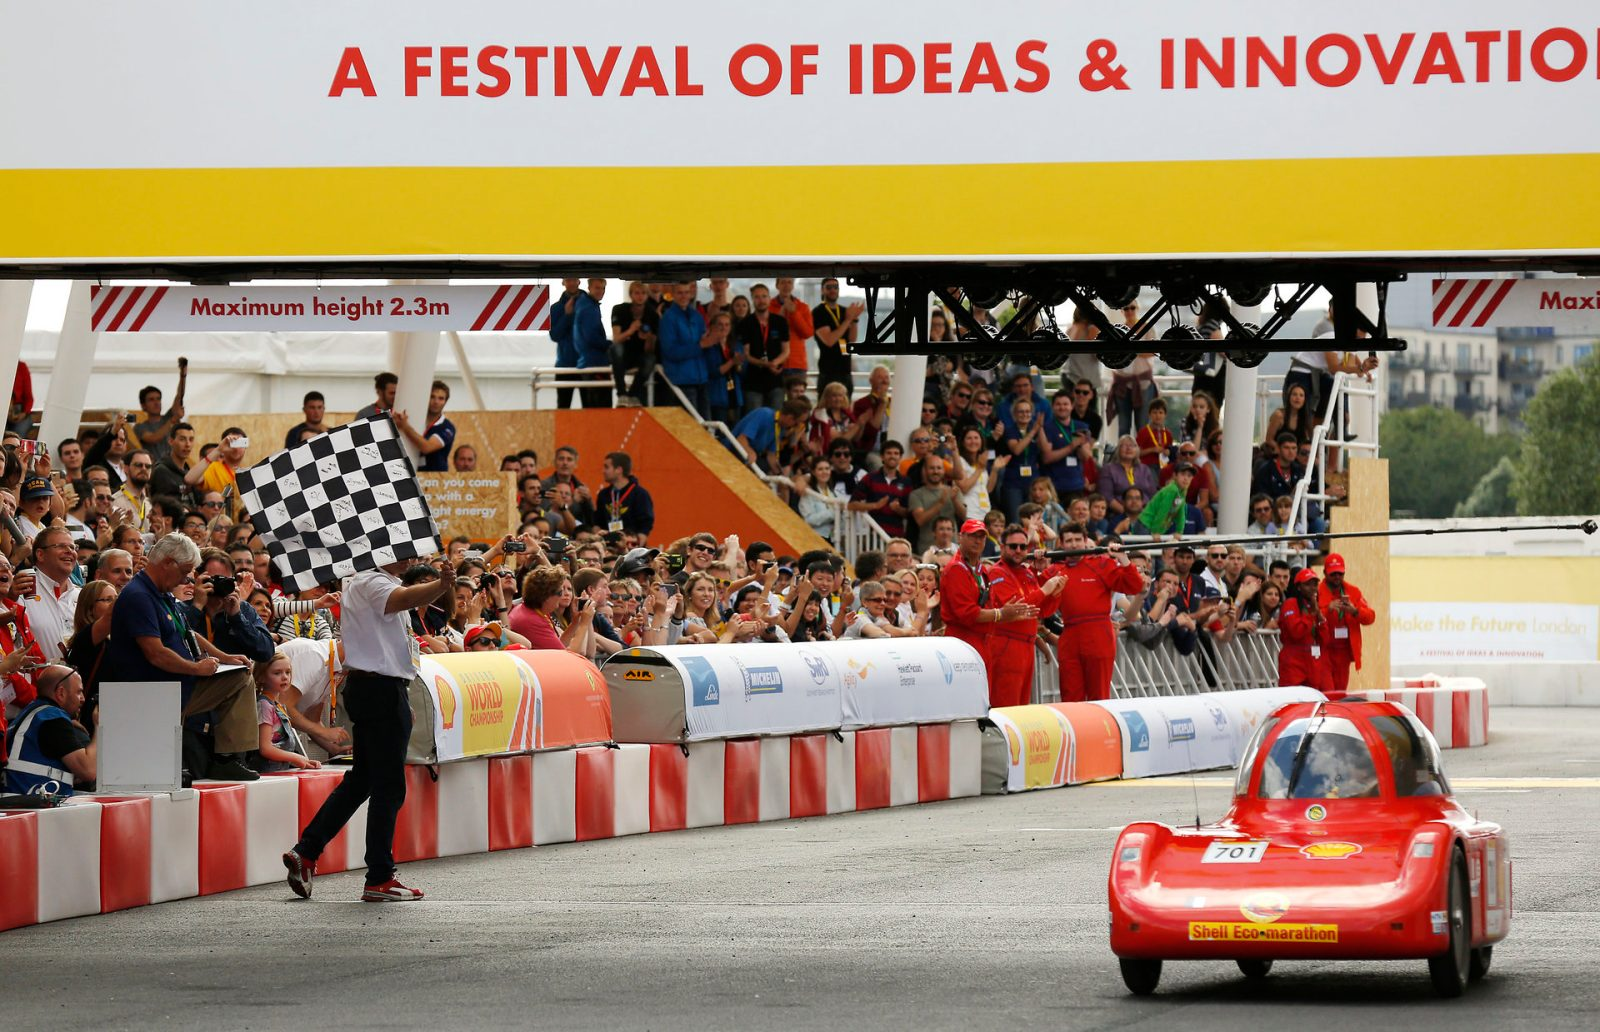 7 student teams from Malaysia vie for honours at Shell Eco-marathon Asia 2017 in Singapore